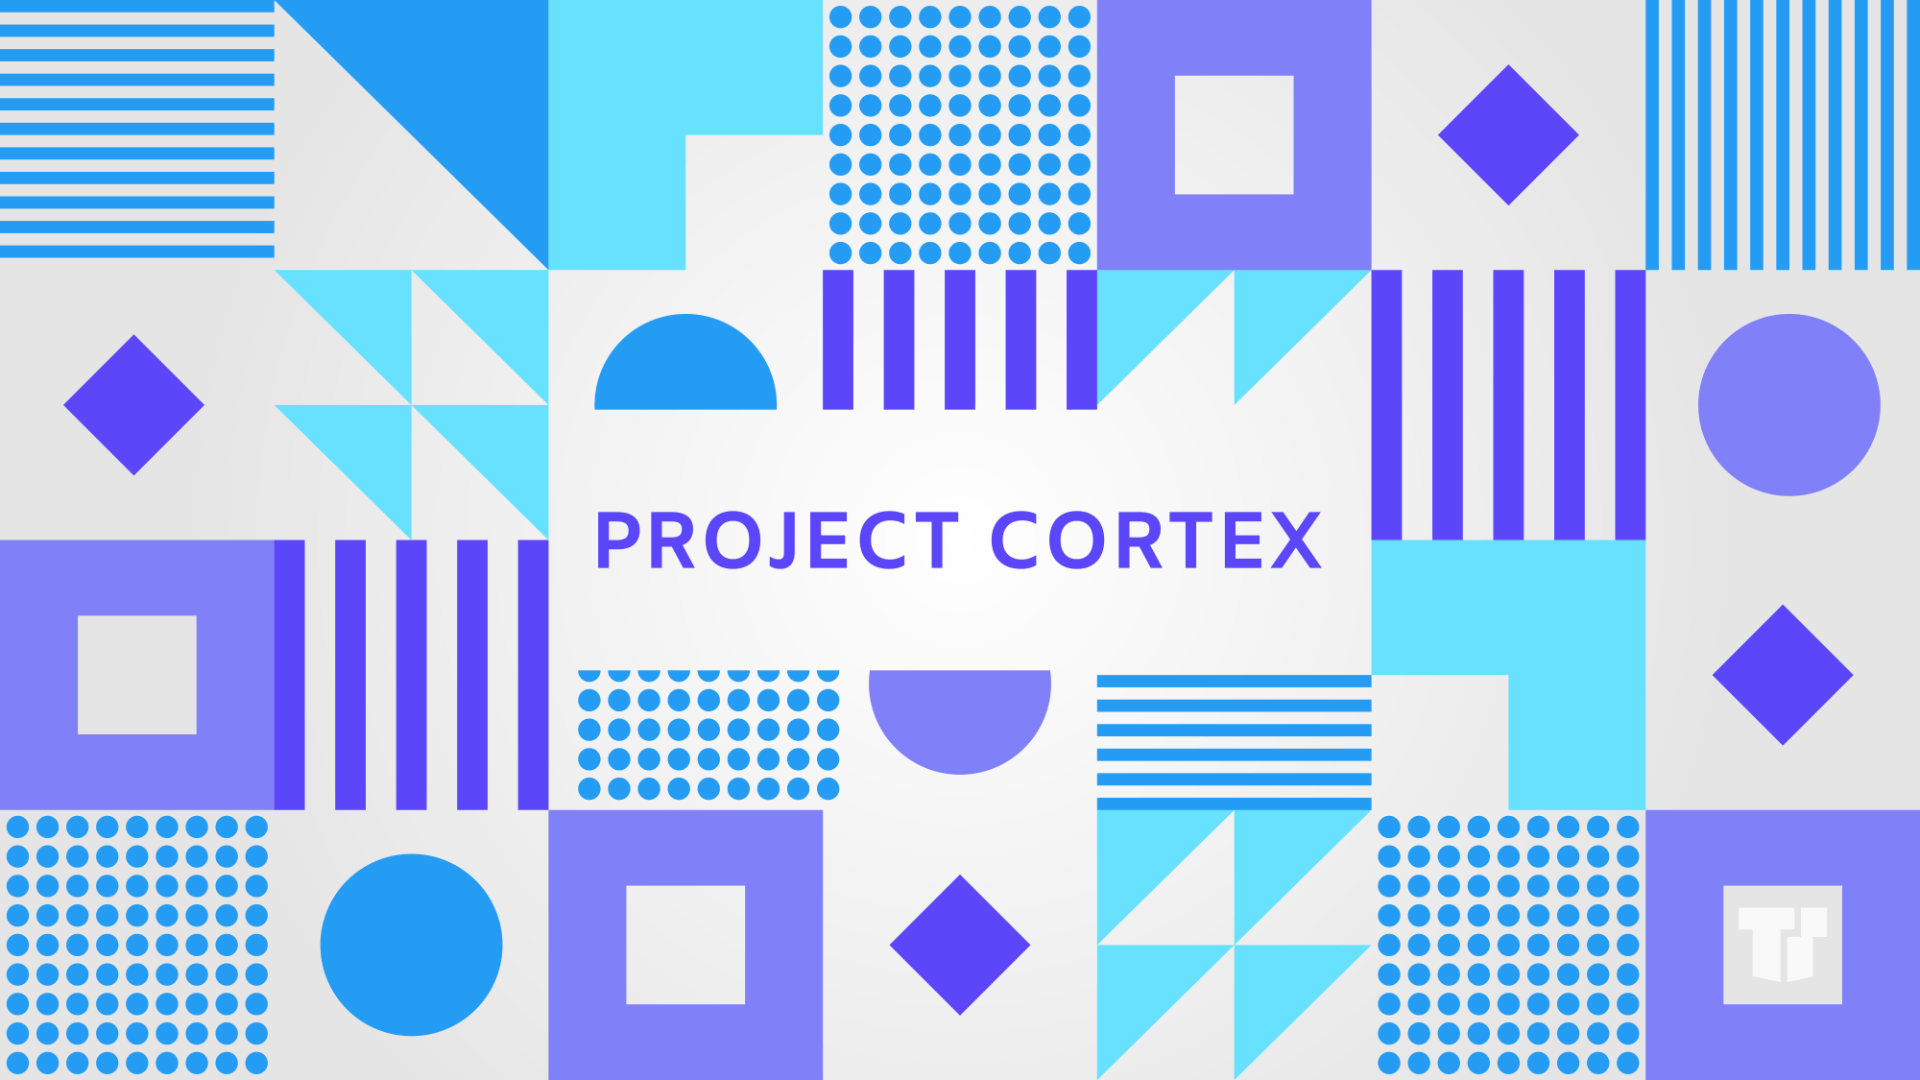 Inside Project Cortex cover image